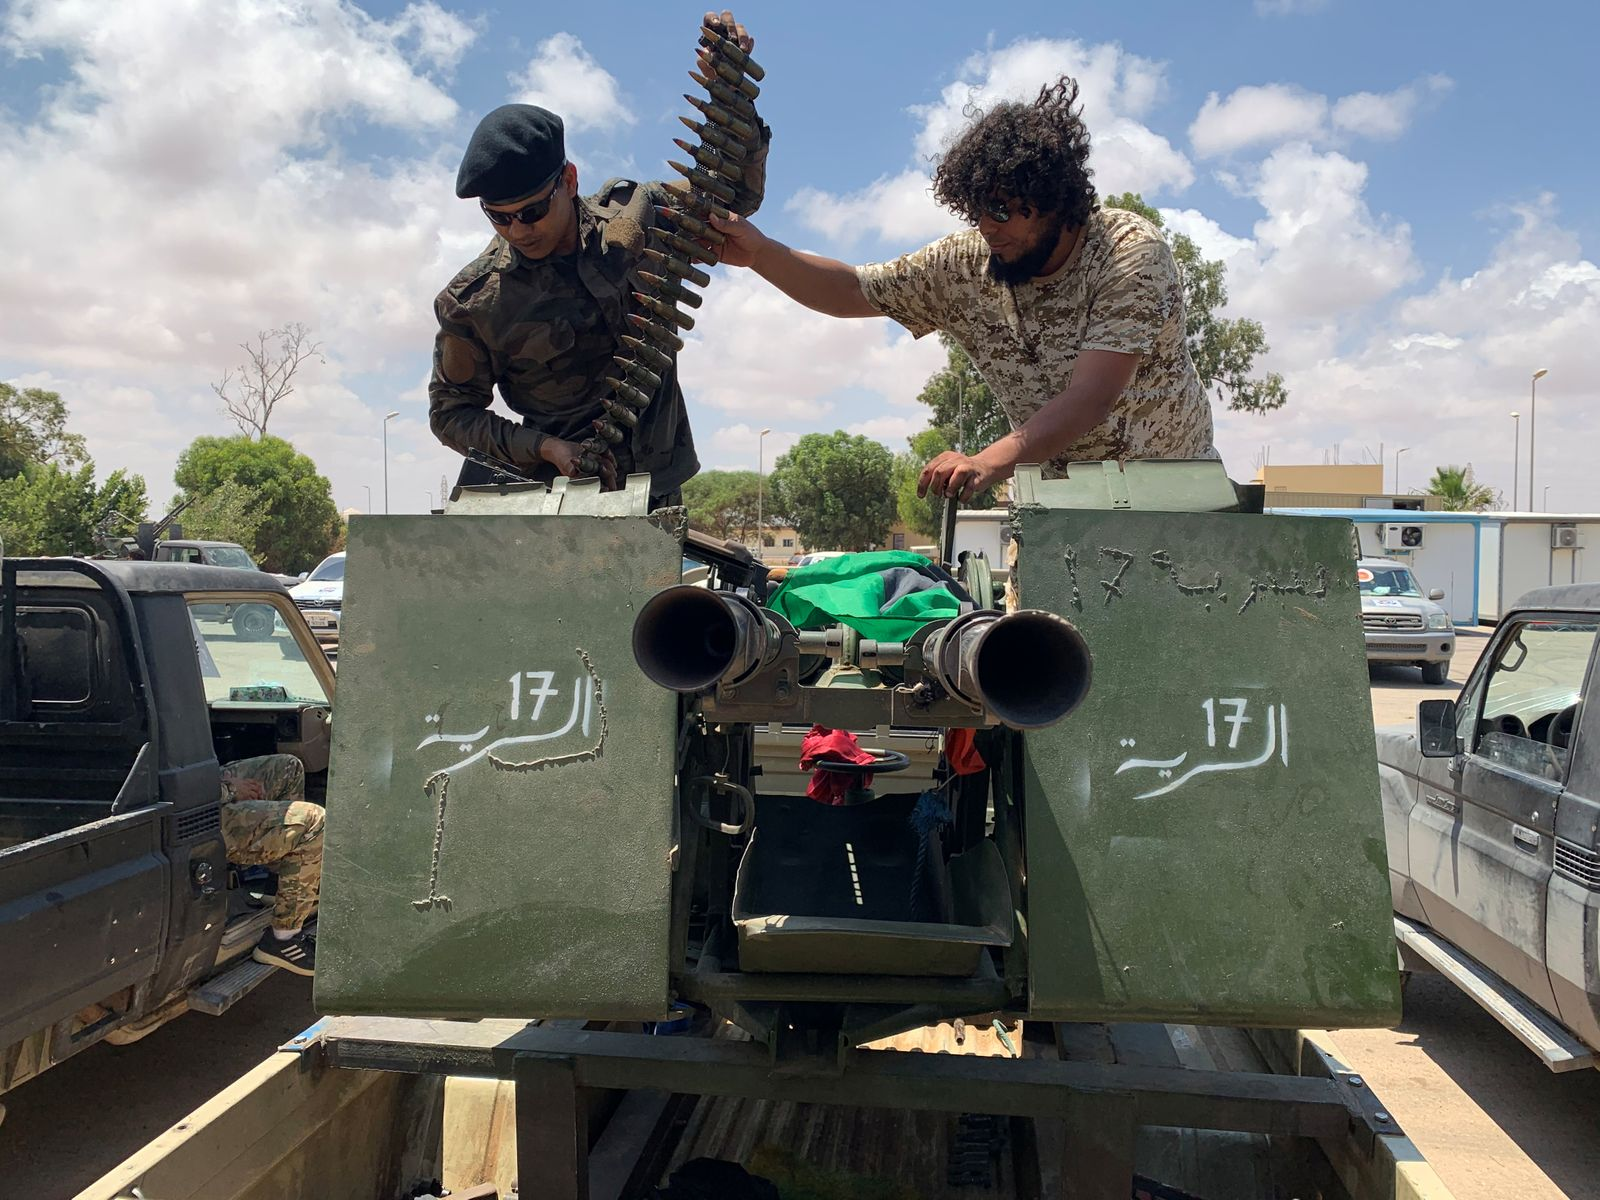 Troops loyal to Libya's internationally recognized government prepare themselves before heading to Sirte, in Tripoli